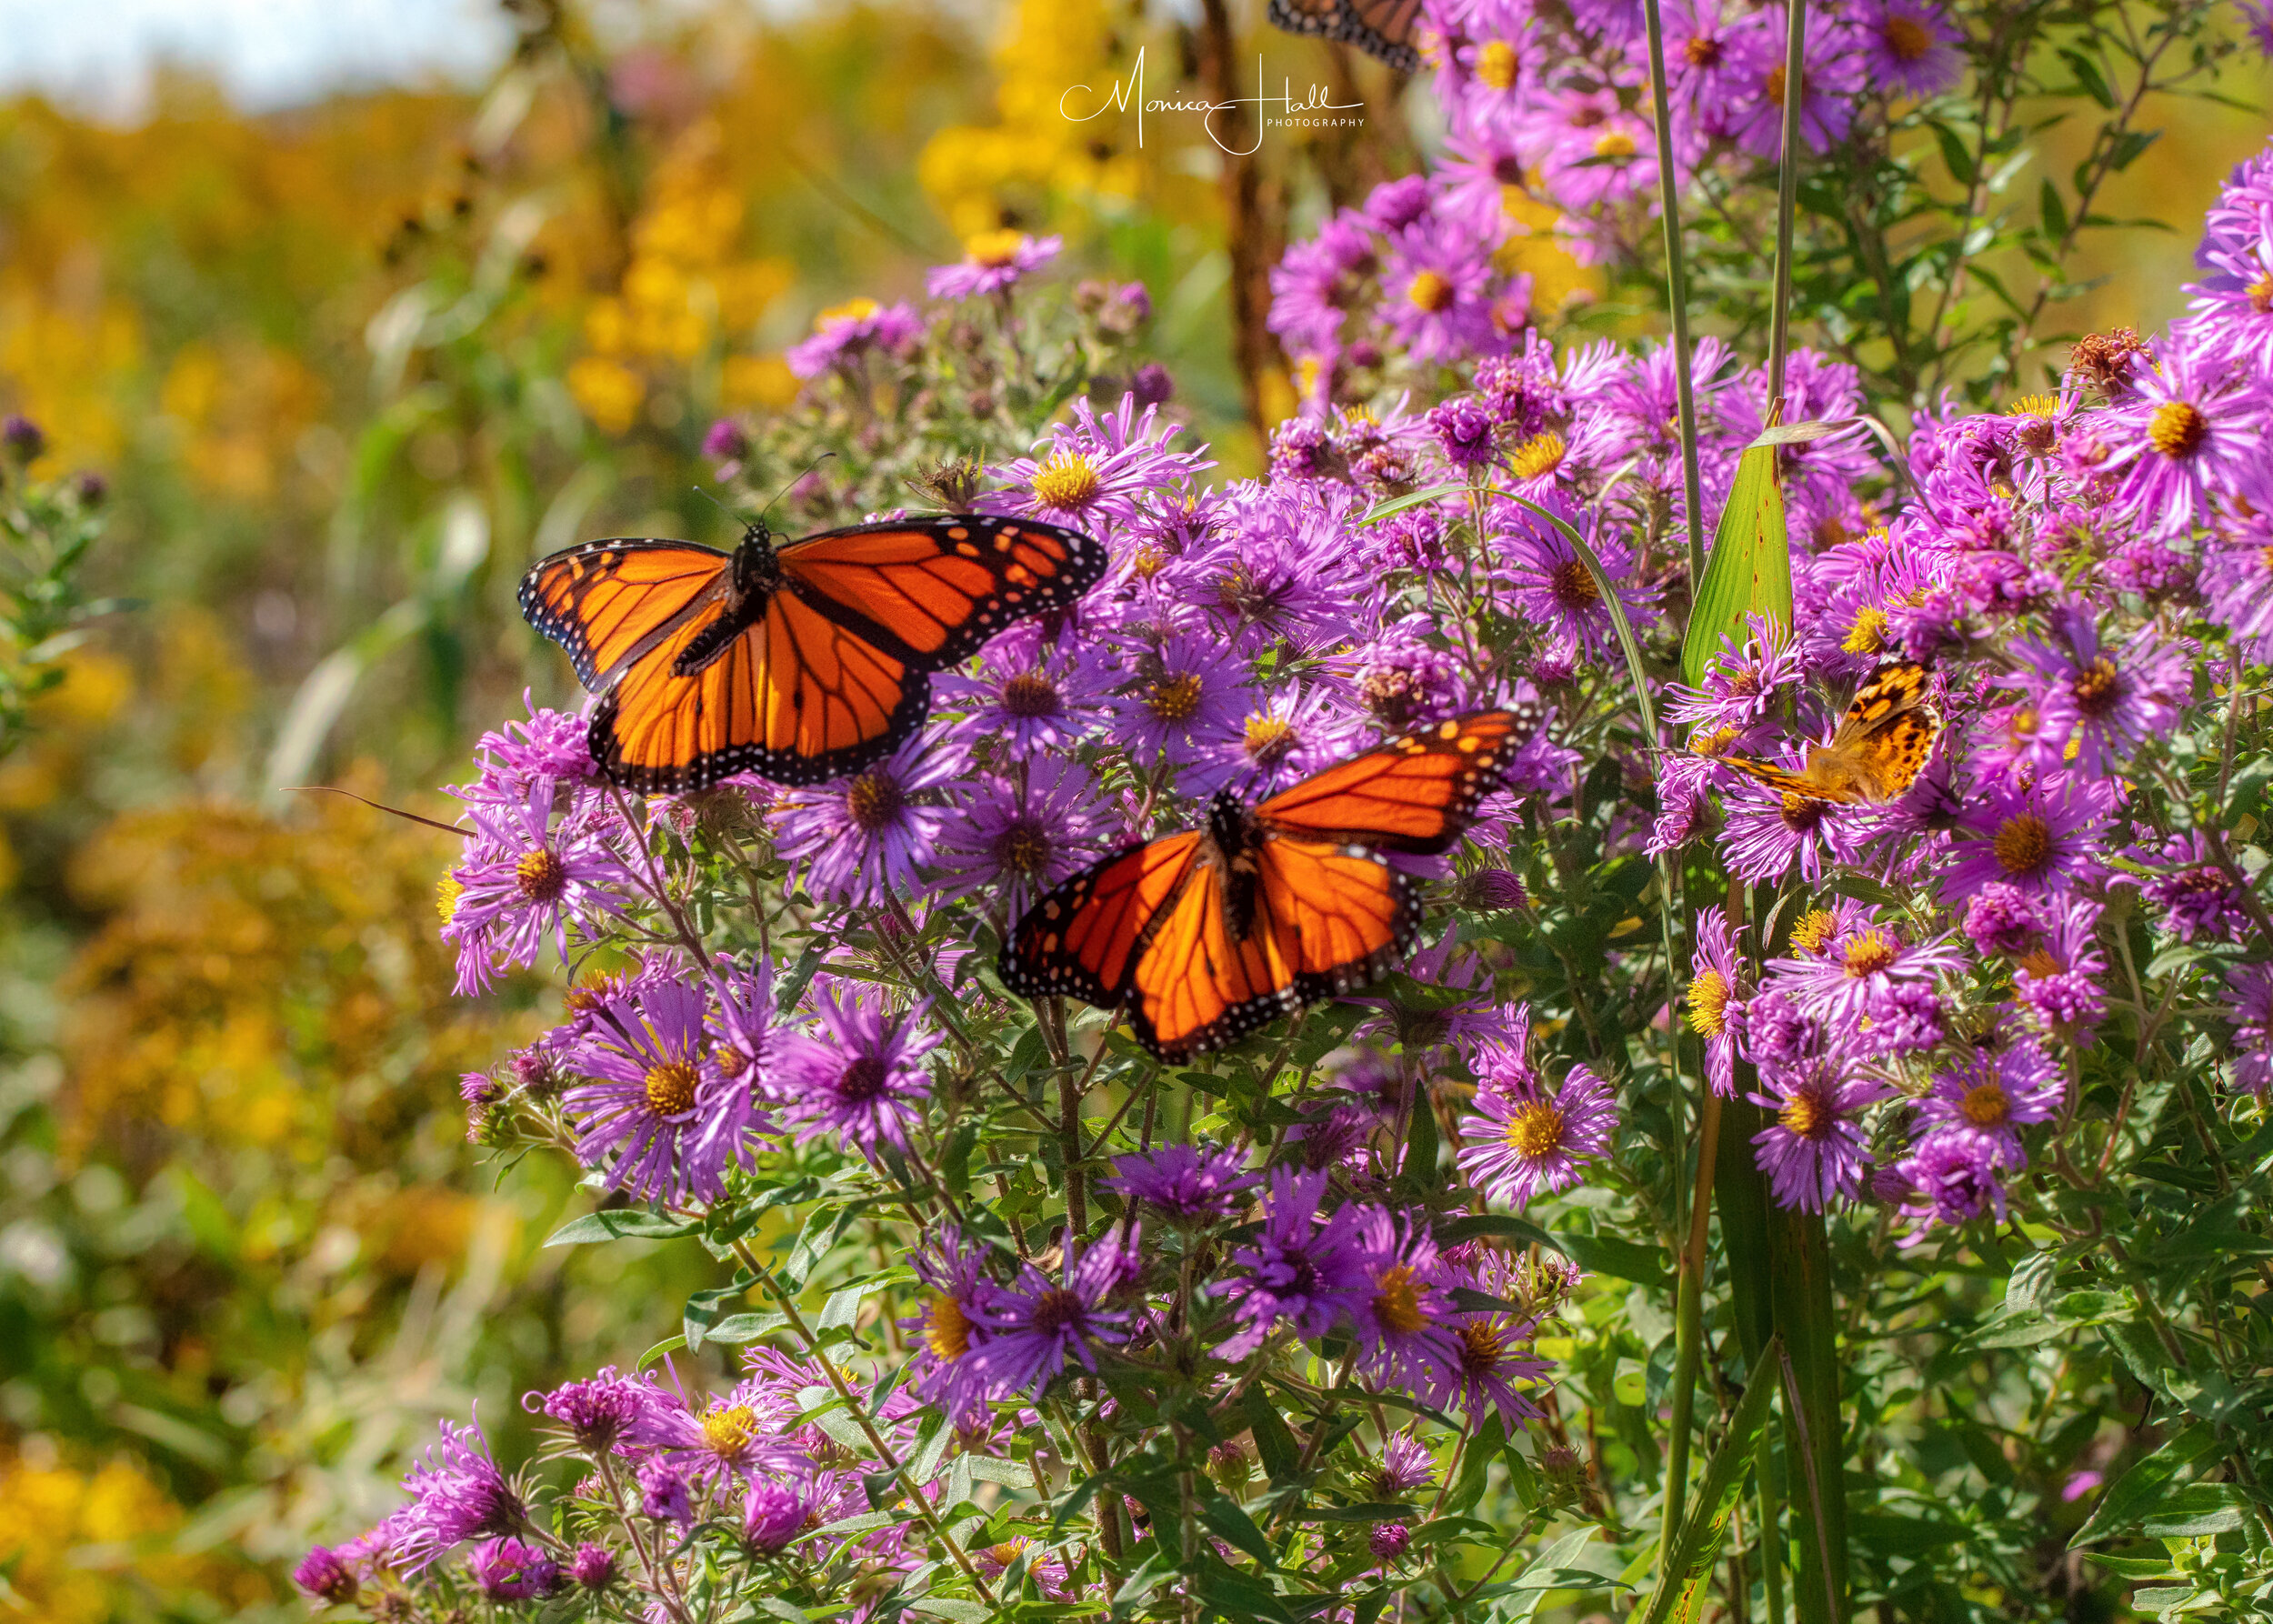 Monarchs on New England aster, photo by Monica Hall